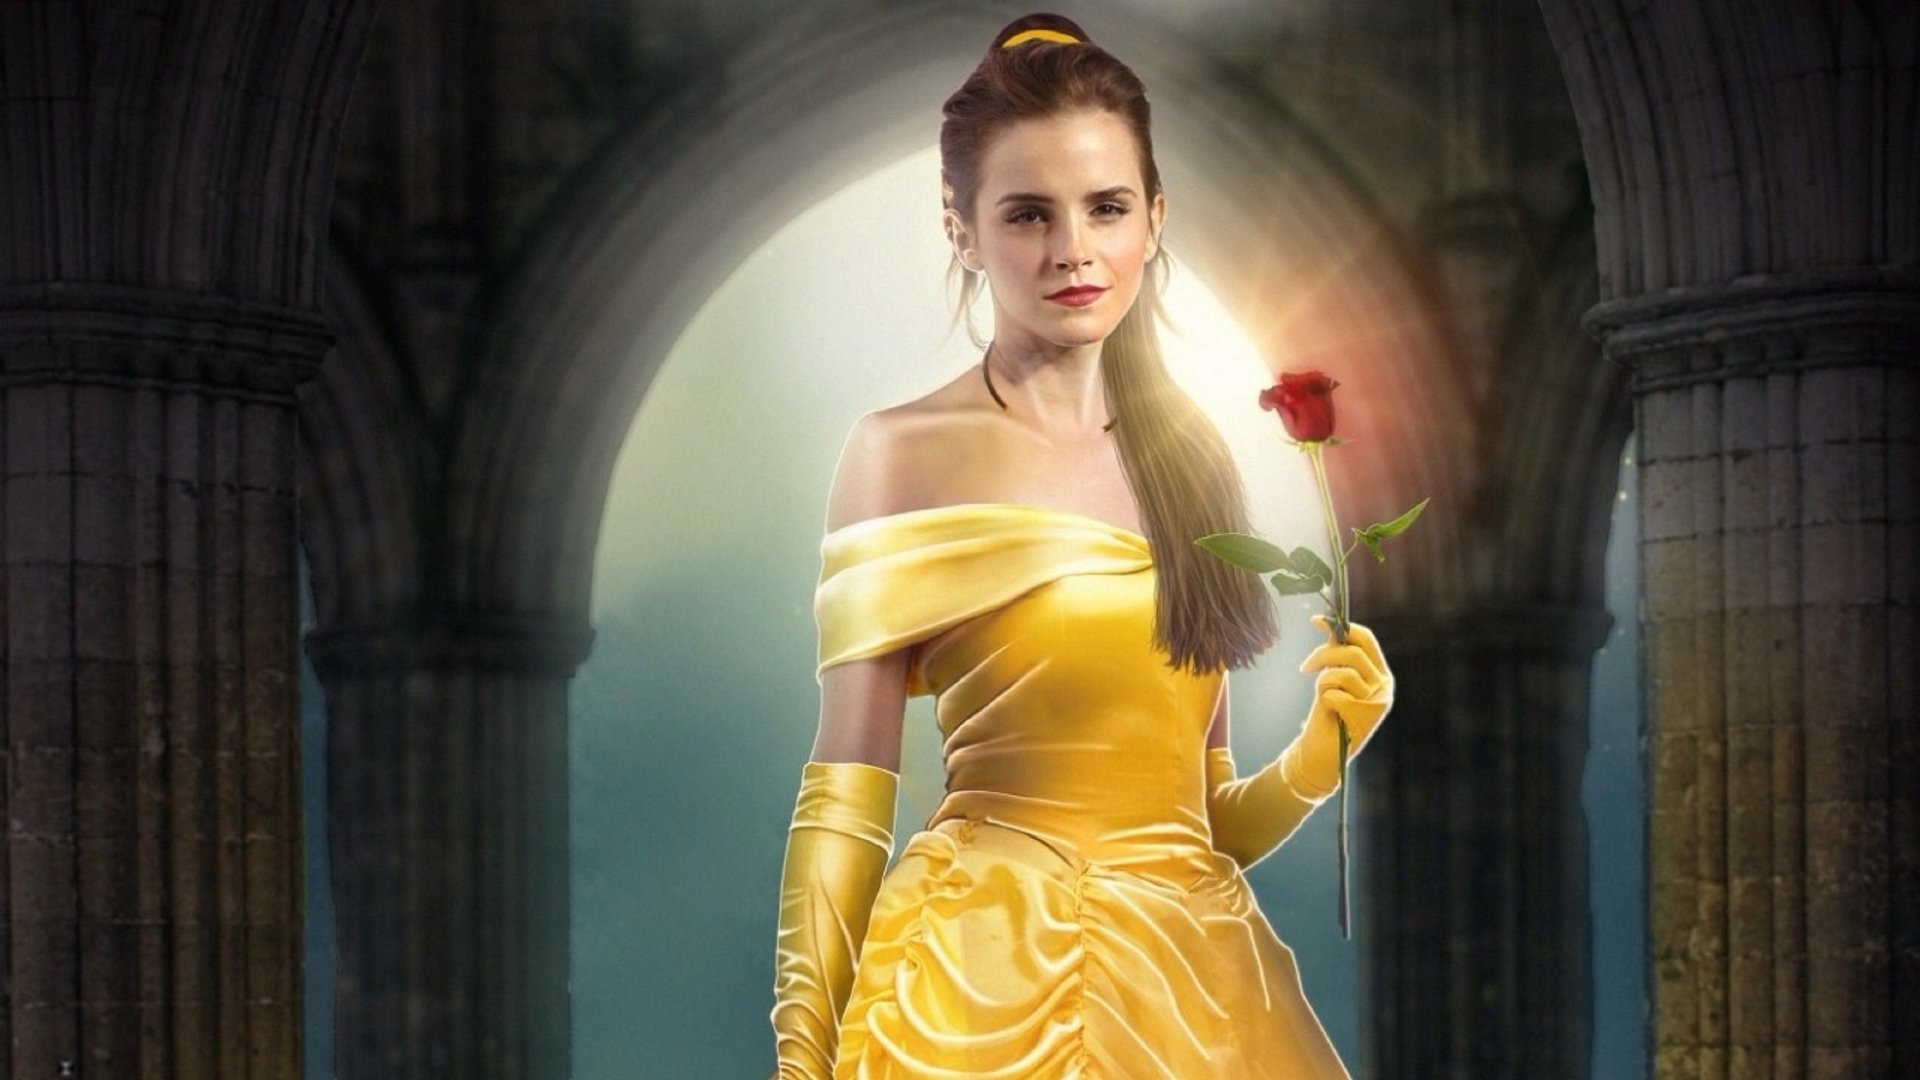 Emma Watson As Belle In Beauty And The Beast 2017 Fondo